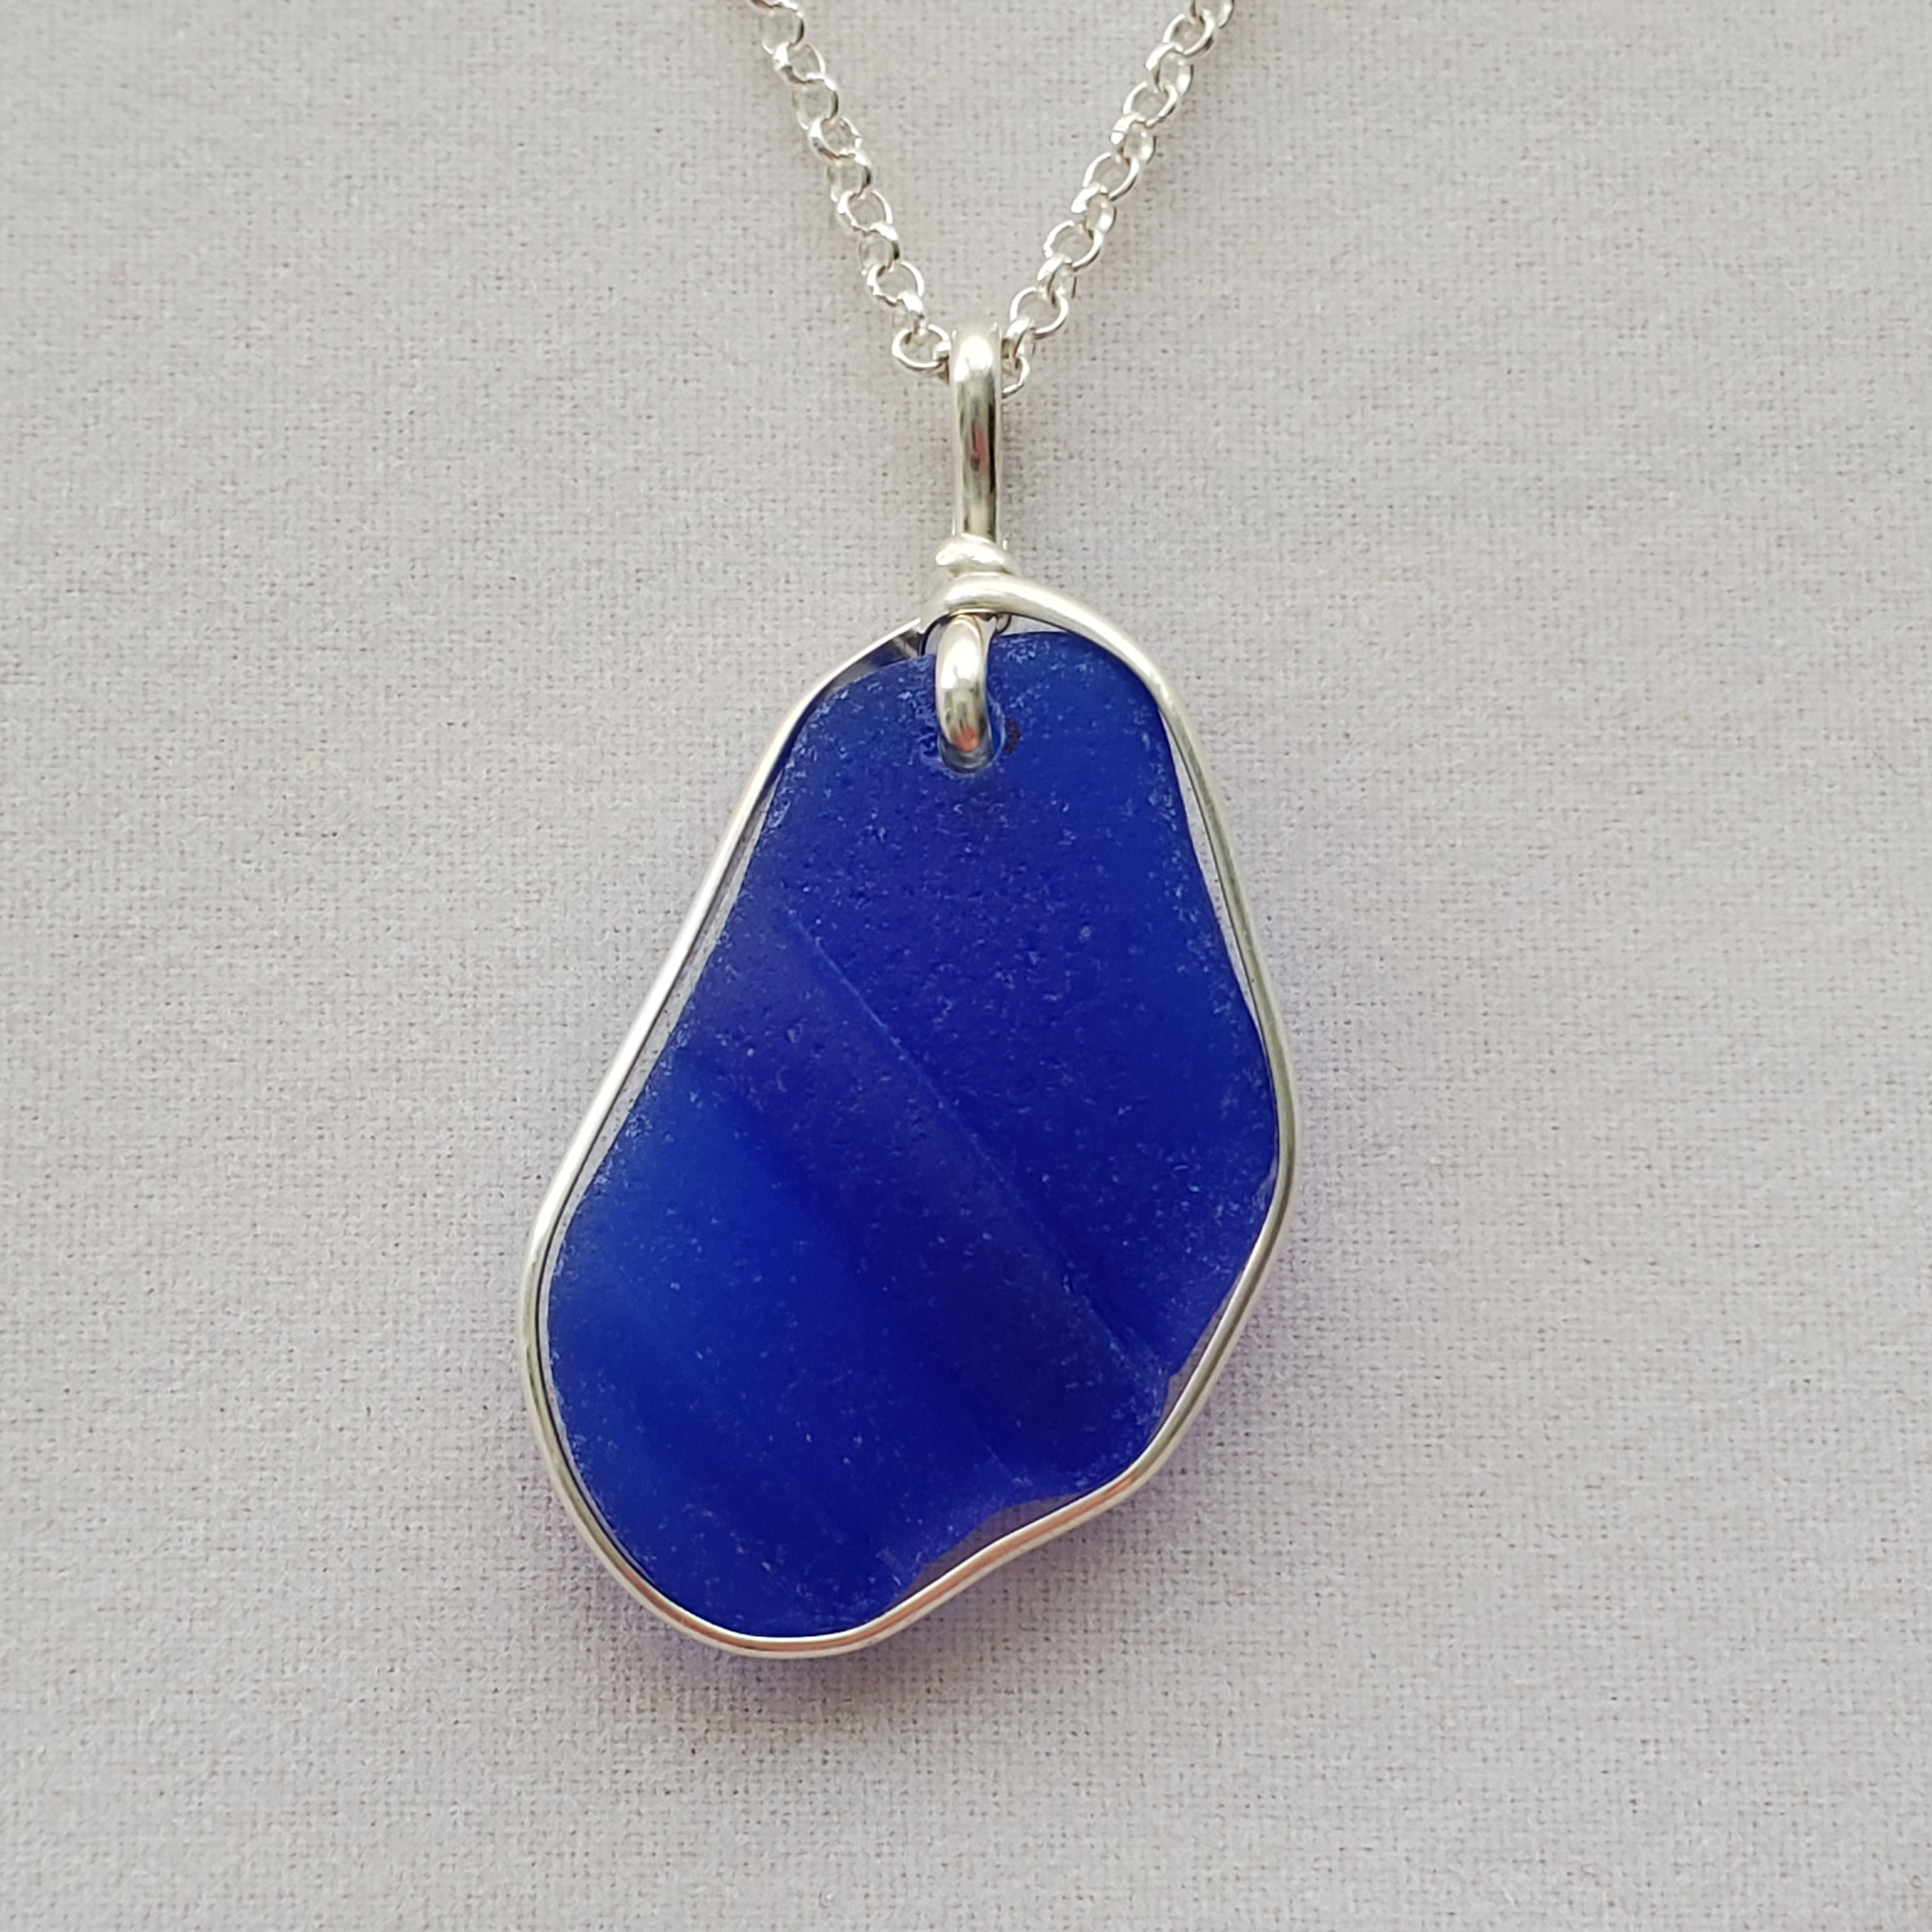 Close-up of ridged cobalt blue sea glass necklace with sterling silver wire wrapping around ouside edge.